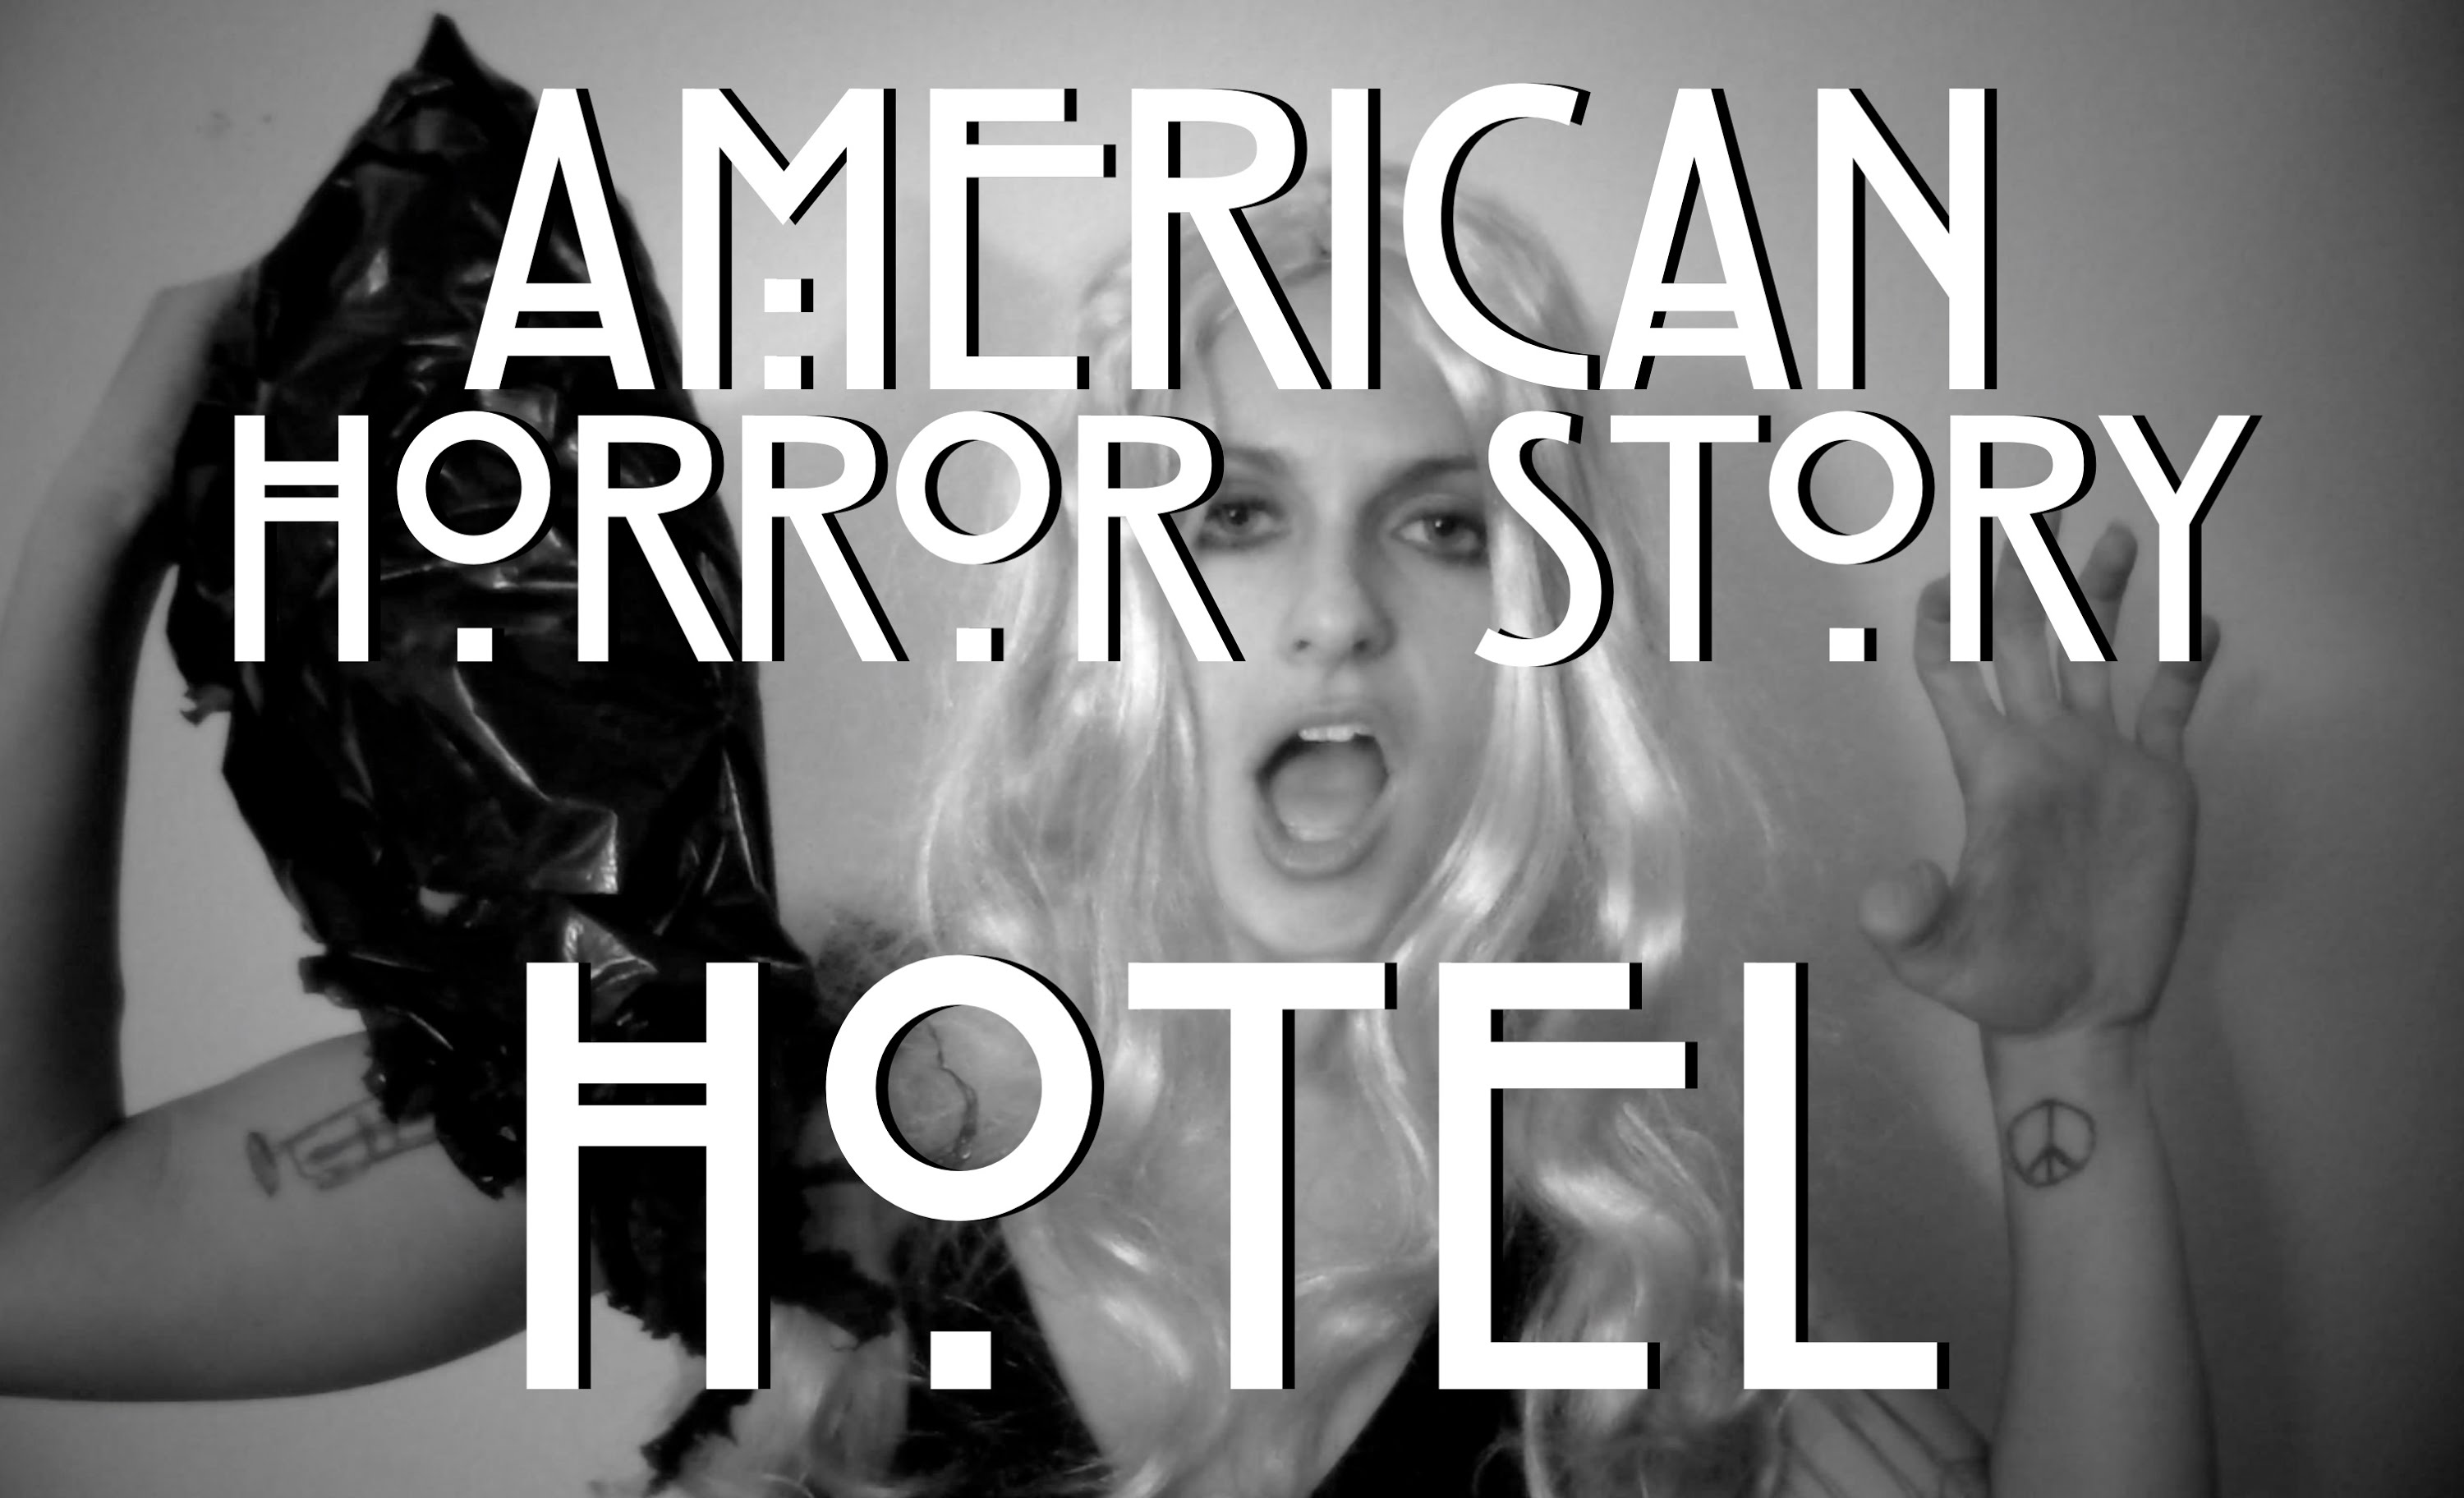 American Horror Story Hotel Wallpapers High Resolution and Quality 3000x1824